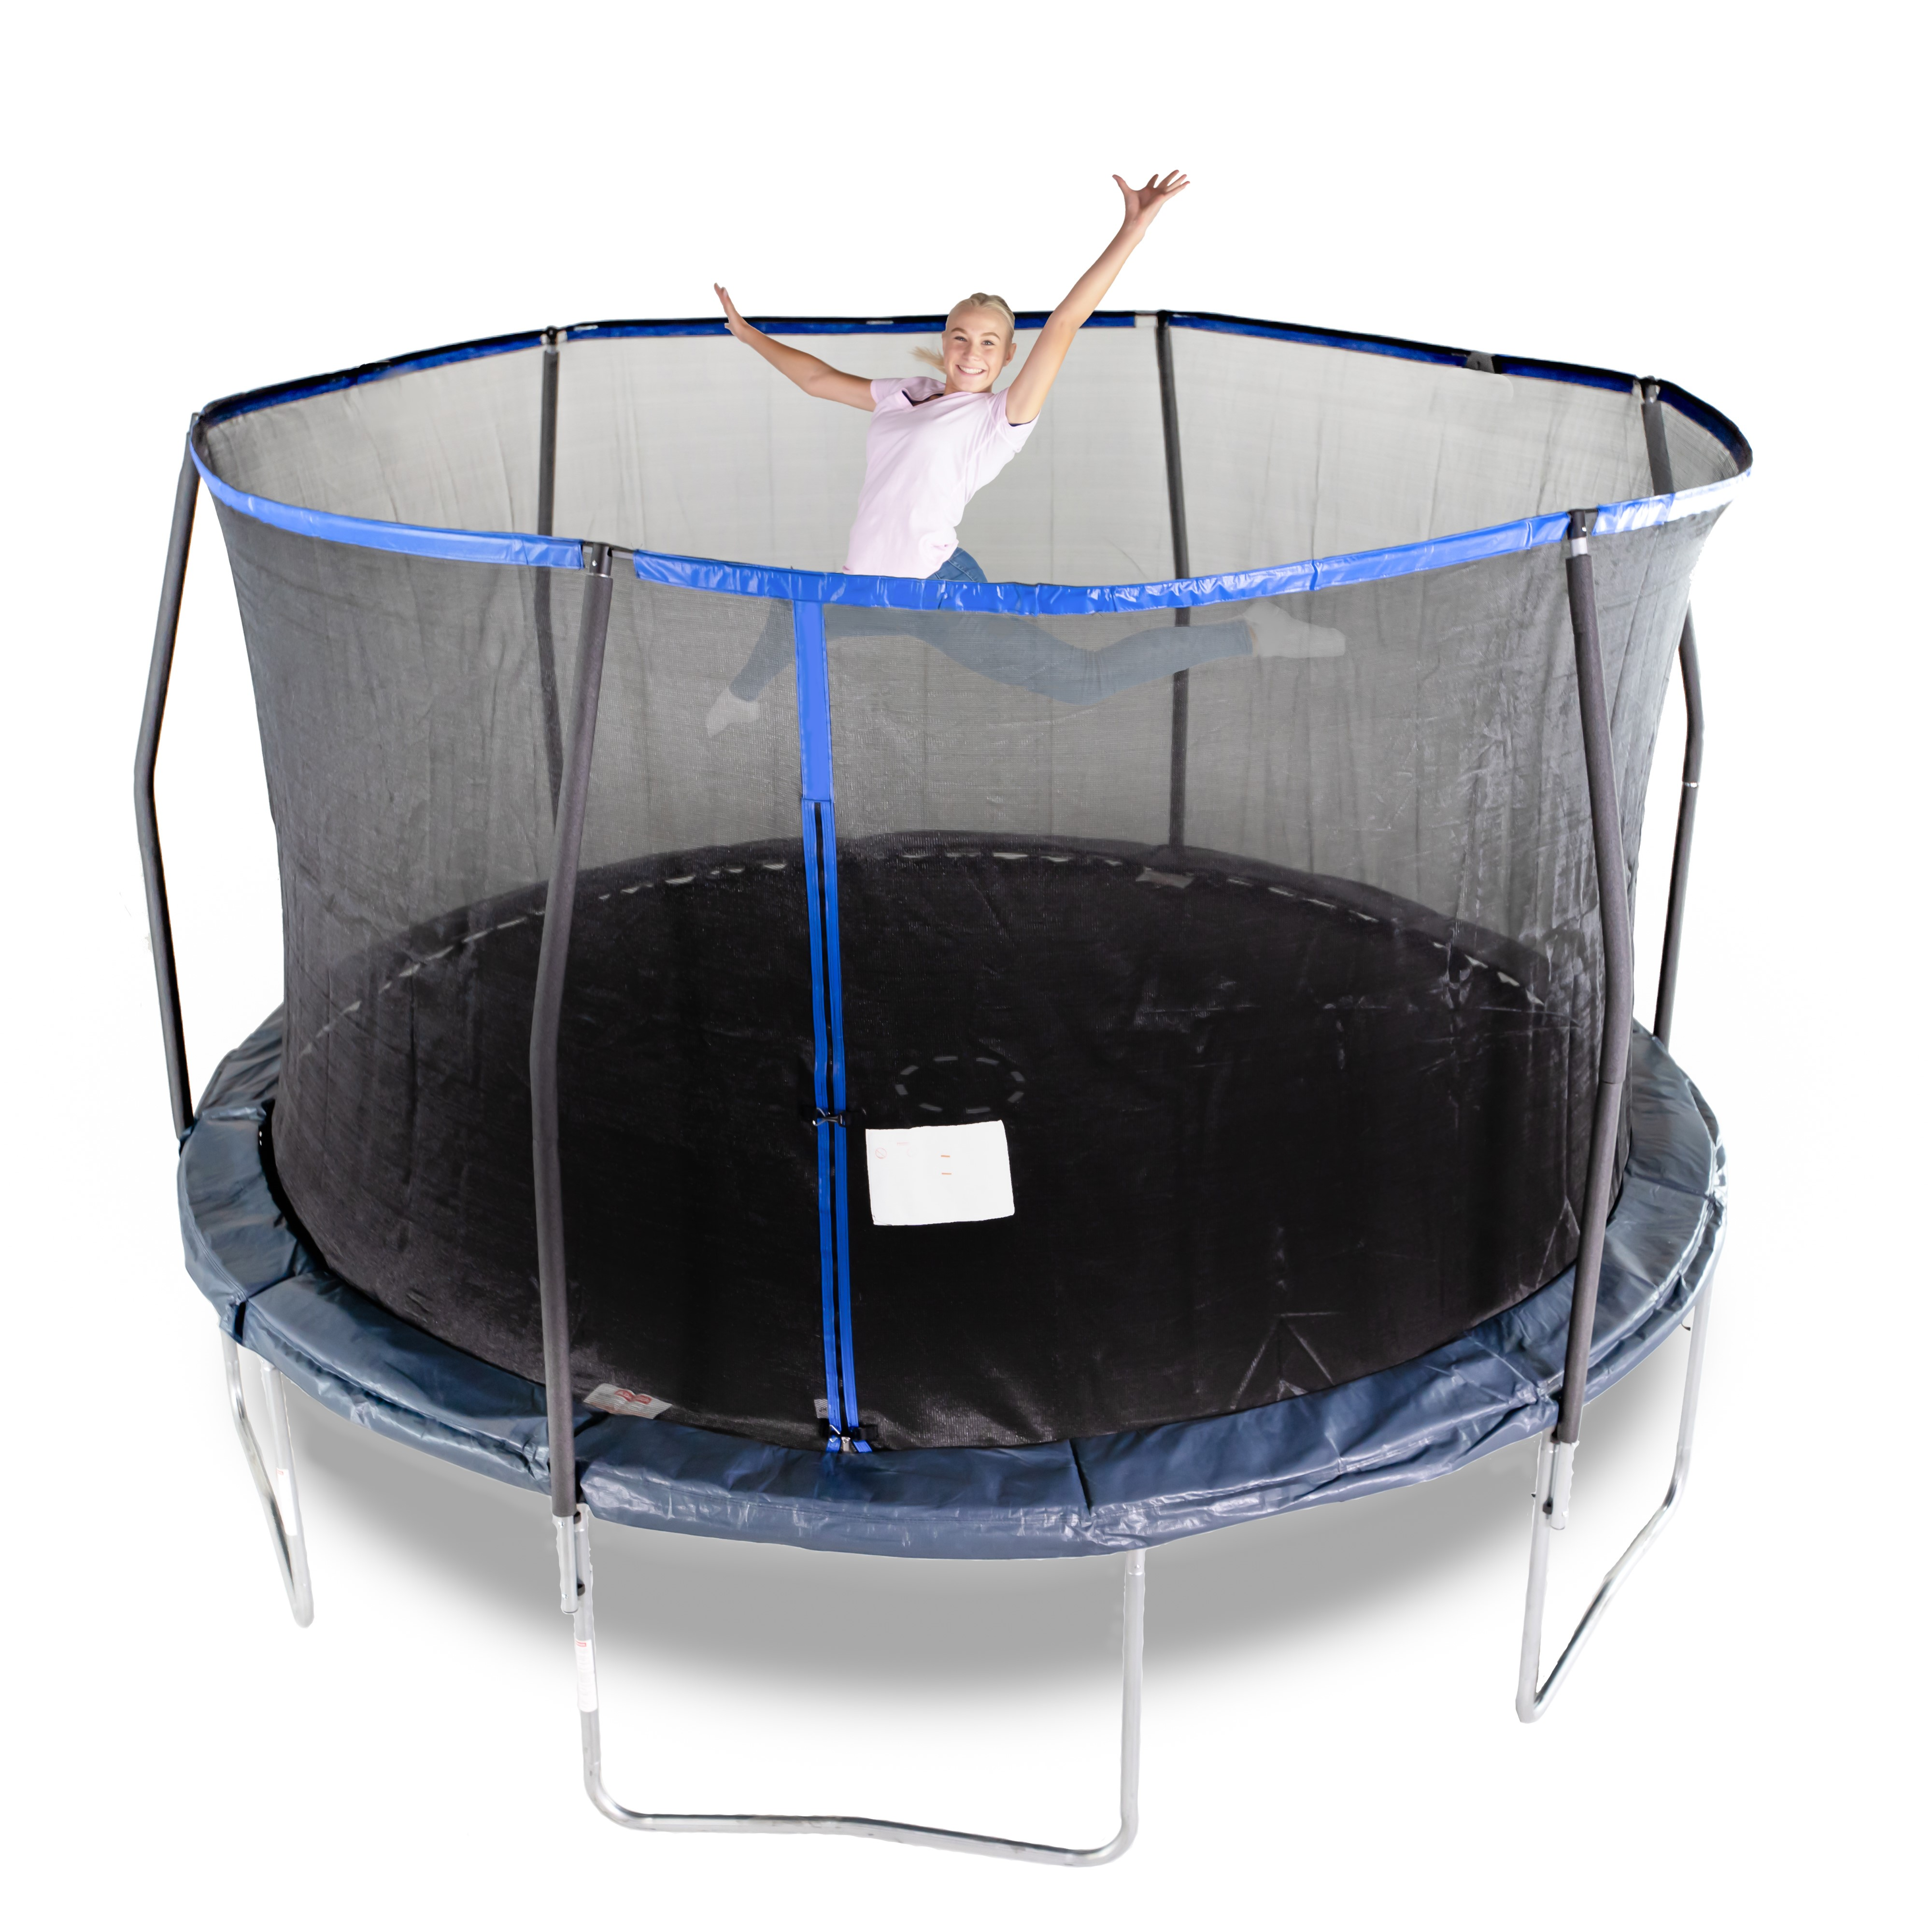 Bounce Pro 14-Foot Trampoline, with Enclosure, Midnight Blue